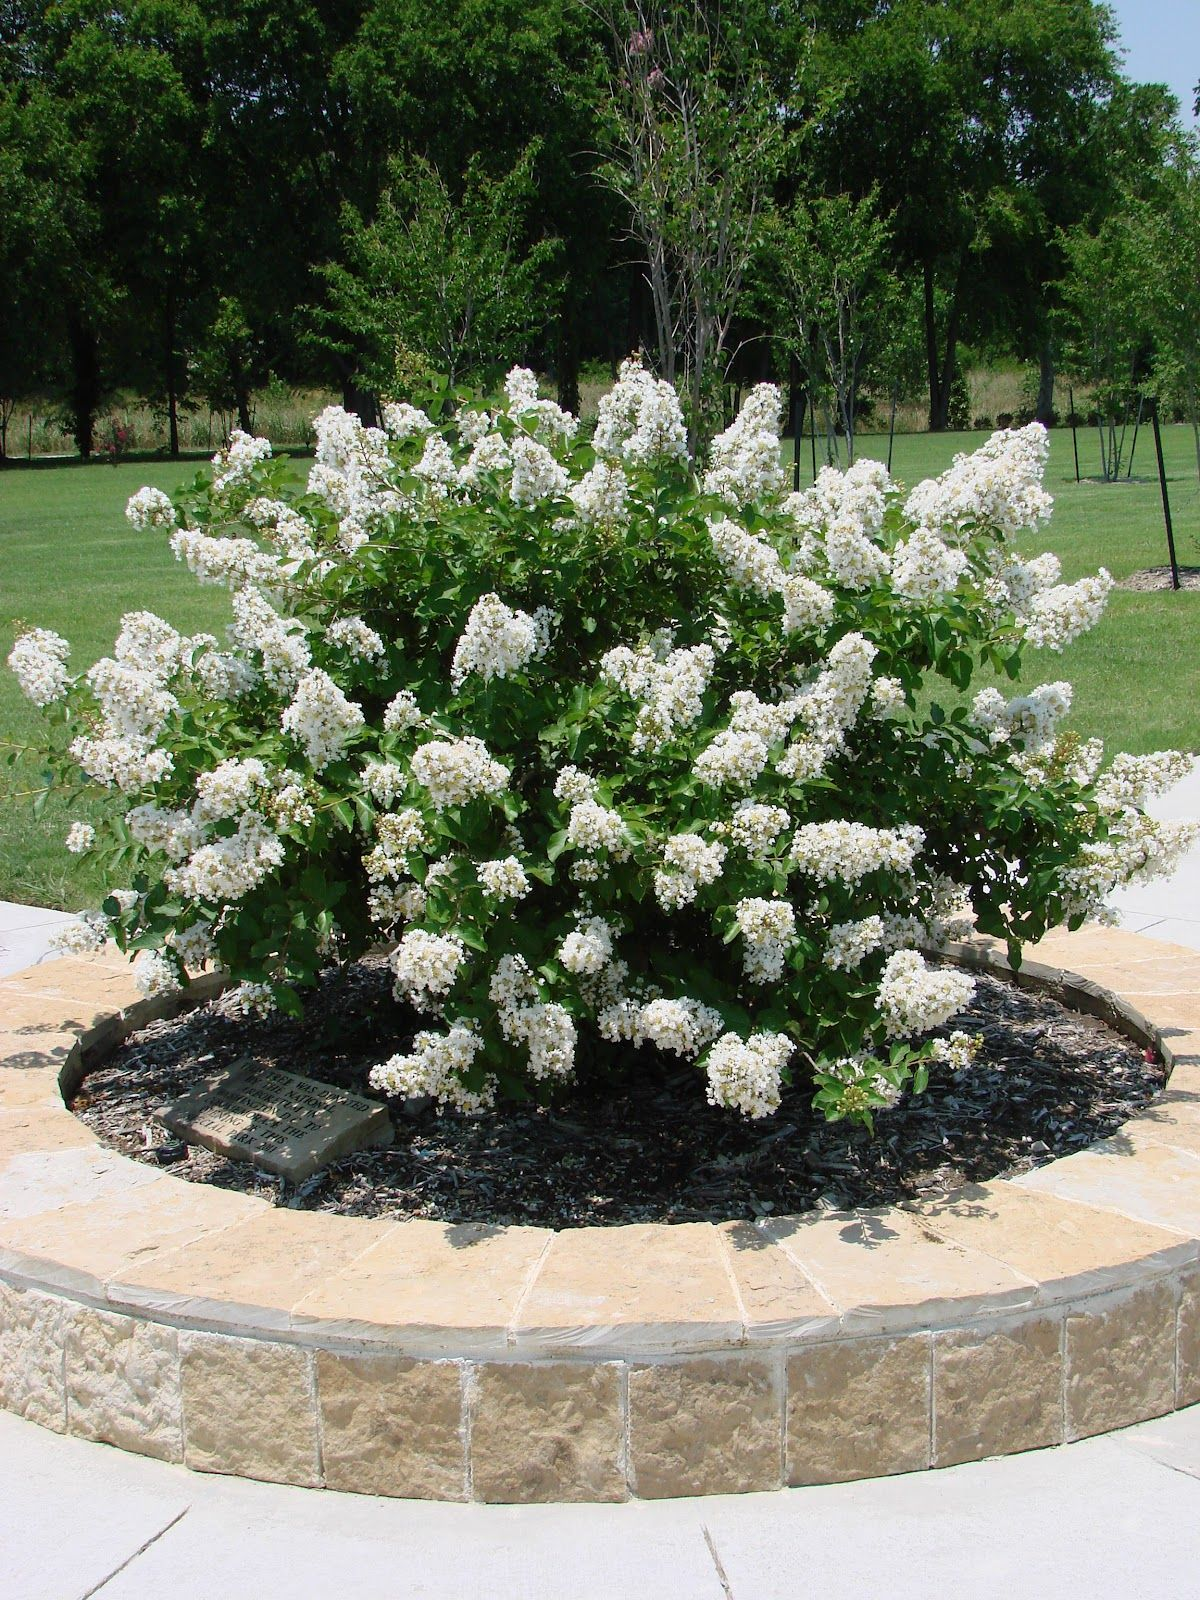 Handy Hints Crape Myrtle Or Crepe Myrtle Plants